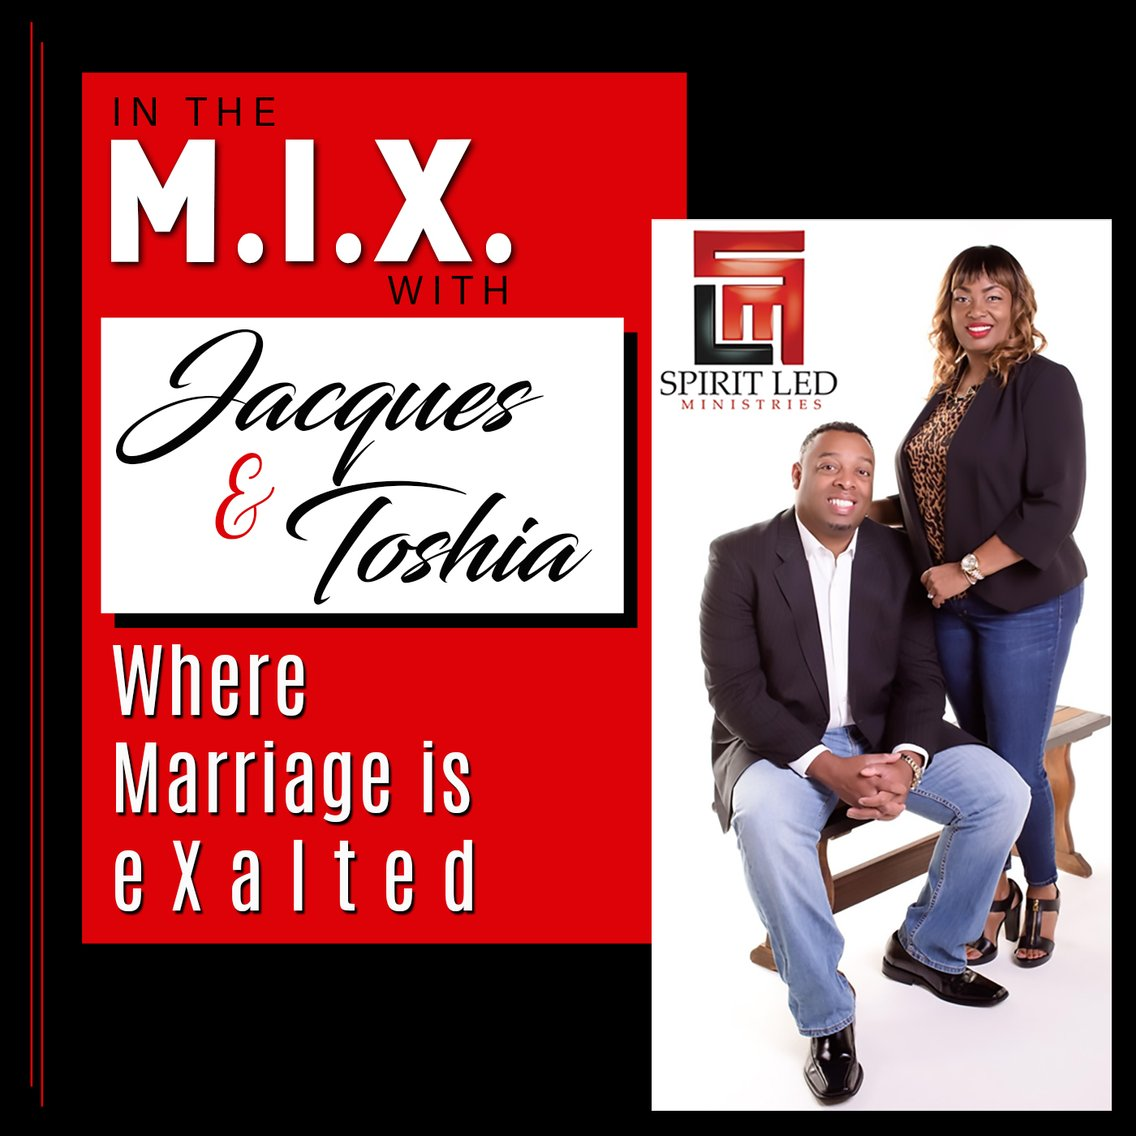 In The M.I.X. With Jacques and Toshia - Cover Image